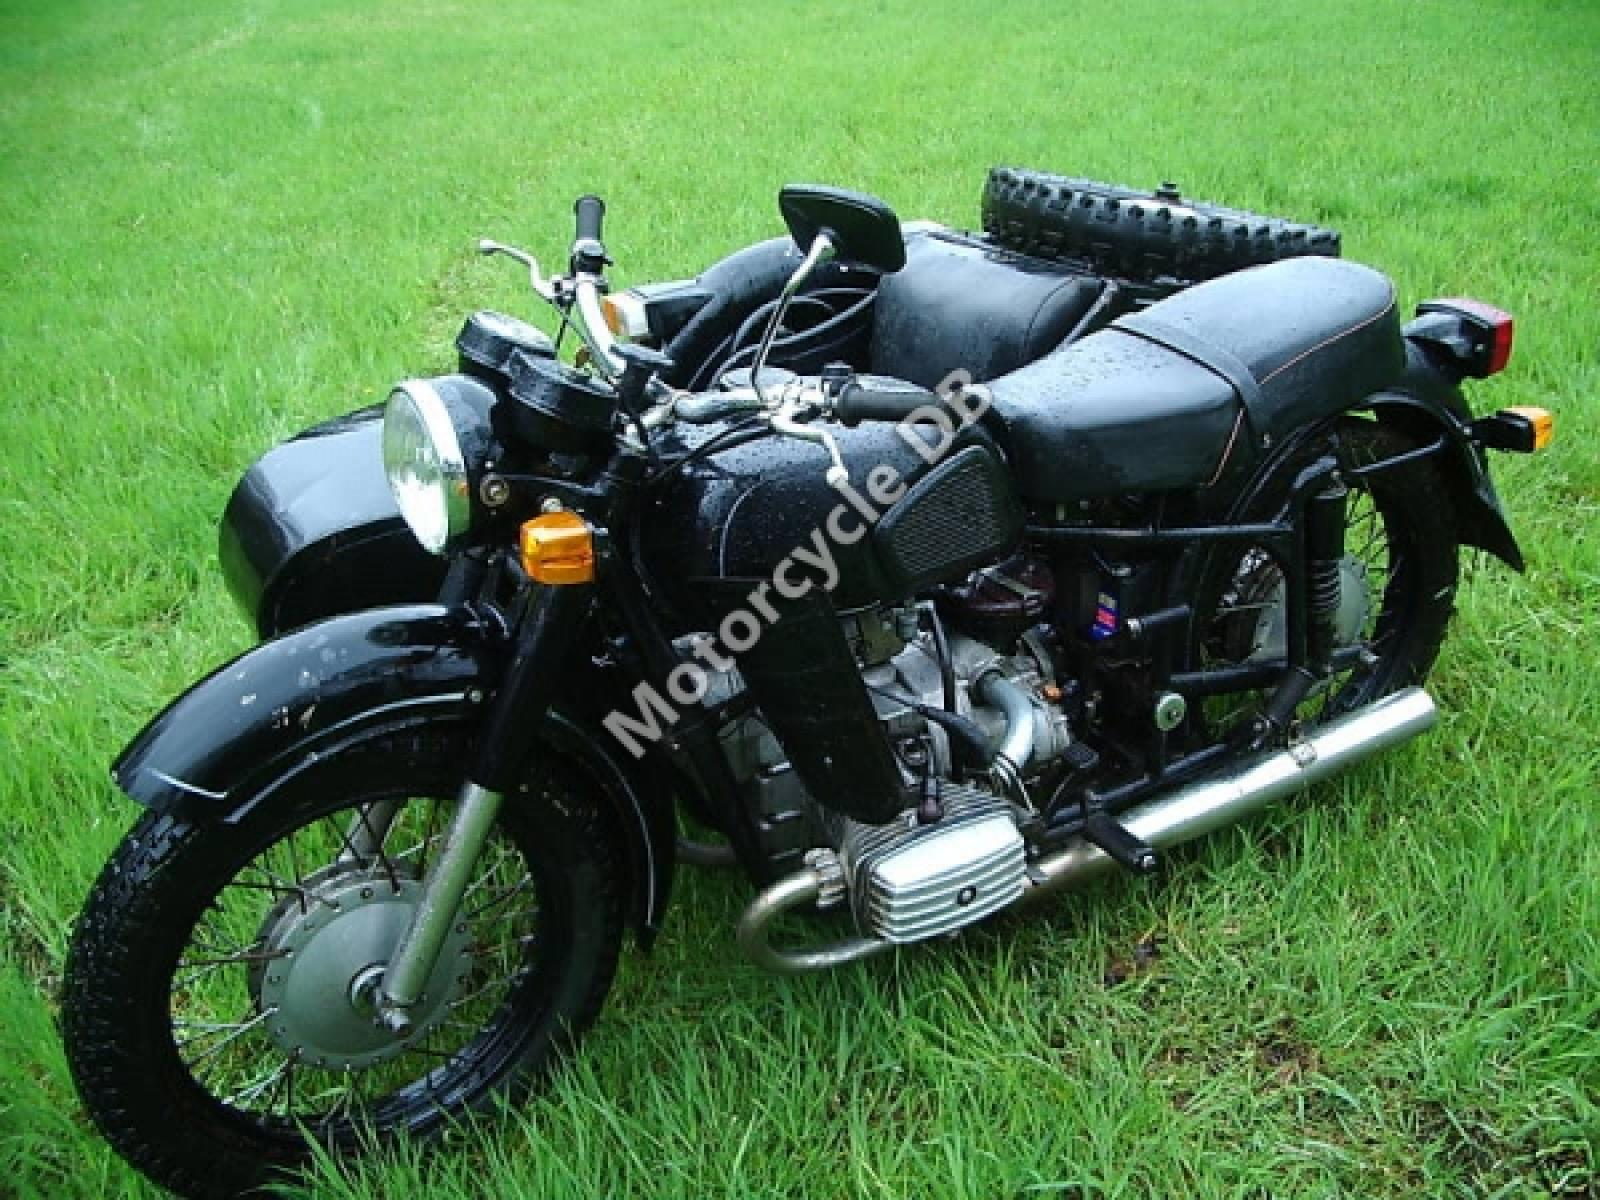 Dnepr MT 11 with sidecar images #95618